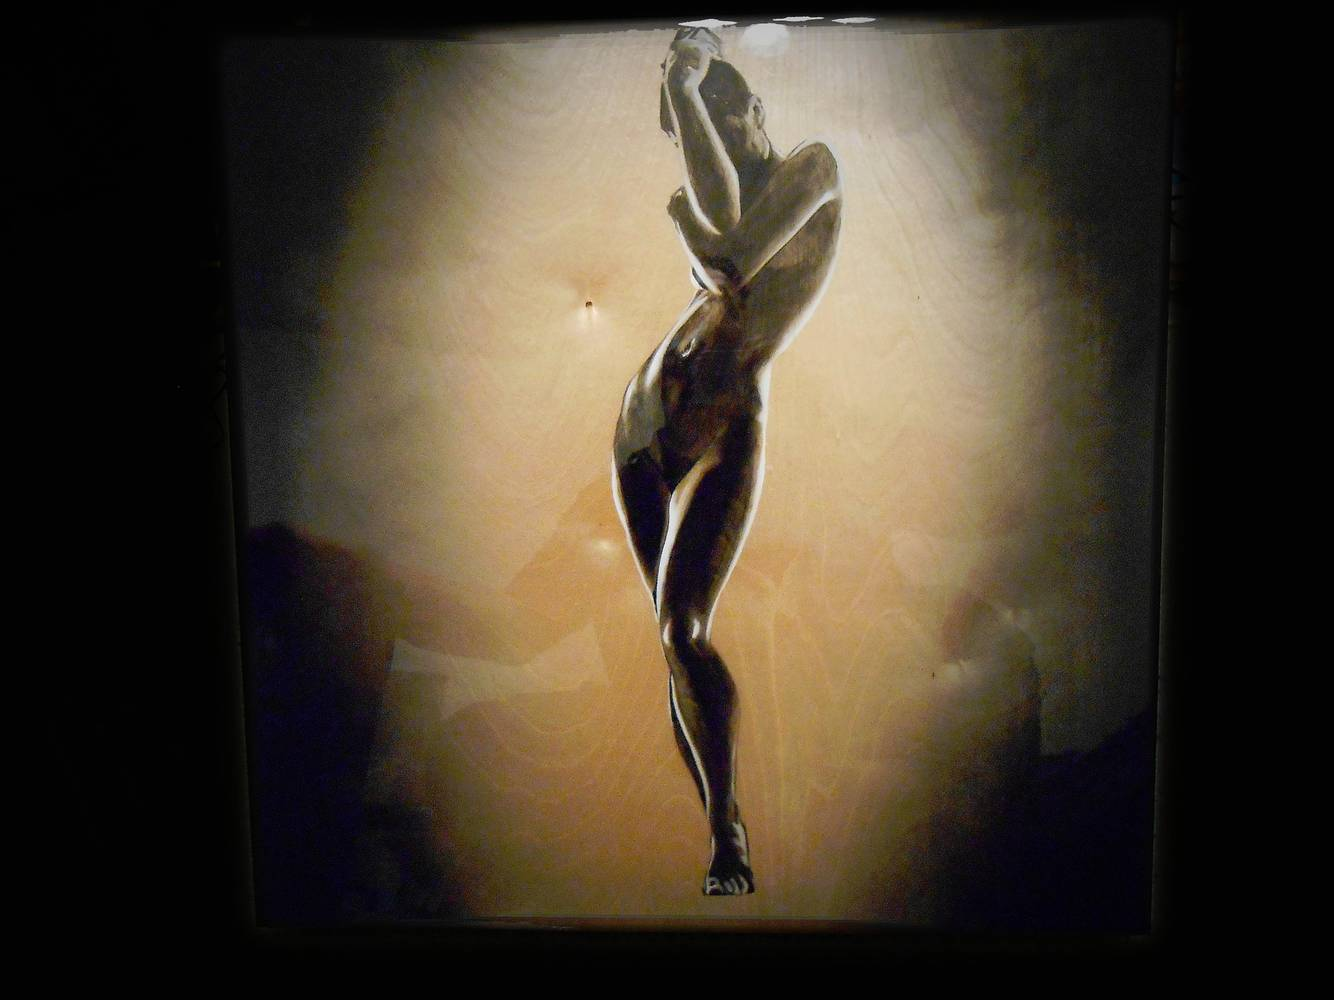 Acrylic painting Nude Silhouette by Darren Hurst